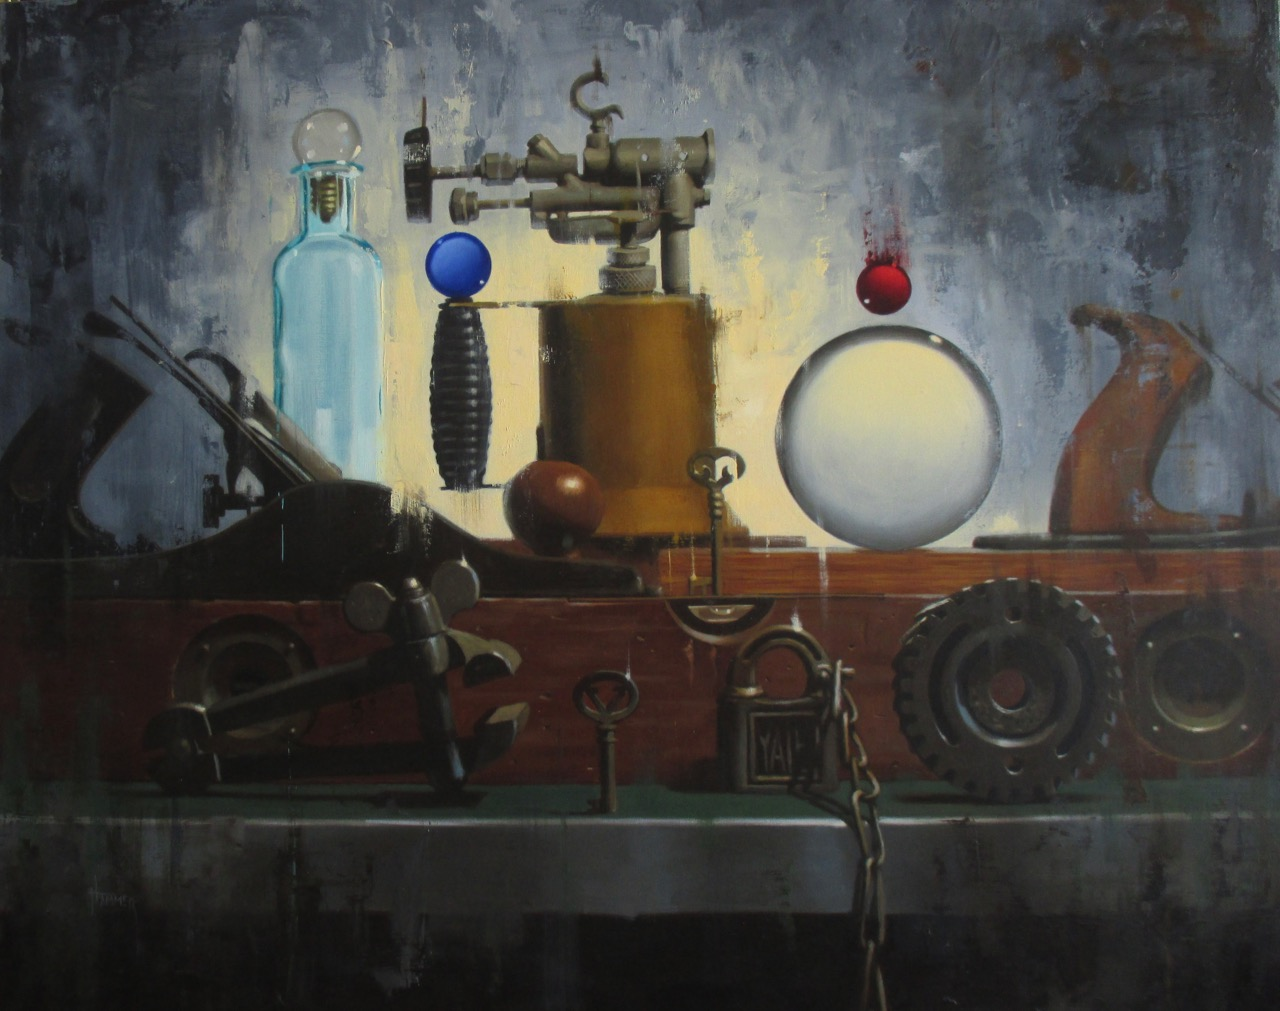 """Tools and Orbs working together"" by Claudia Hammer, oil on panel, 24x30in, 2017"